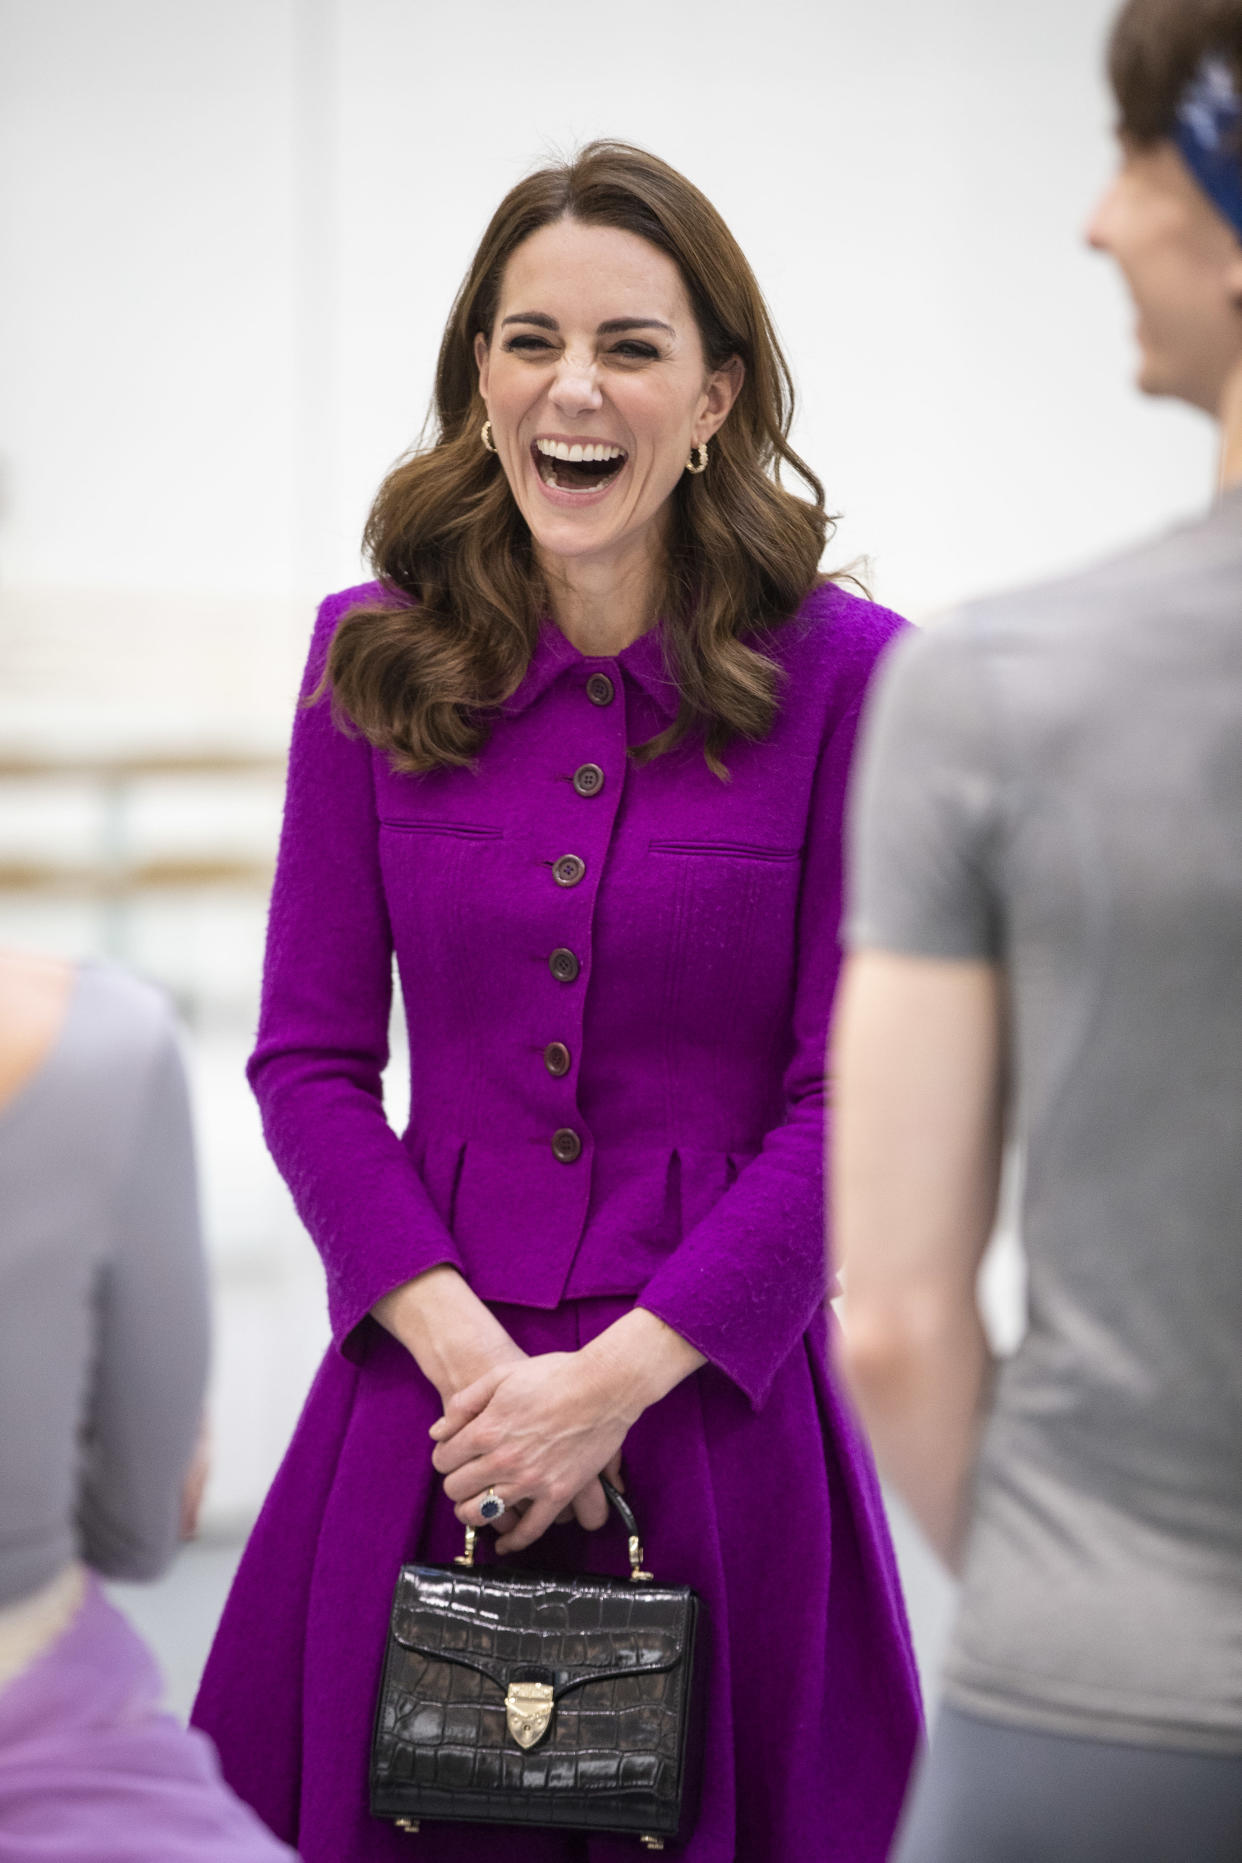 The Duchess of Cambridge visits The Royal Opera House on January 16, 2019 in London with an Aspinal of London bag. (Getty Images)